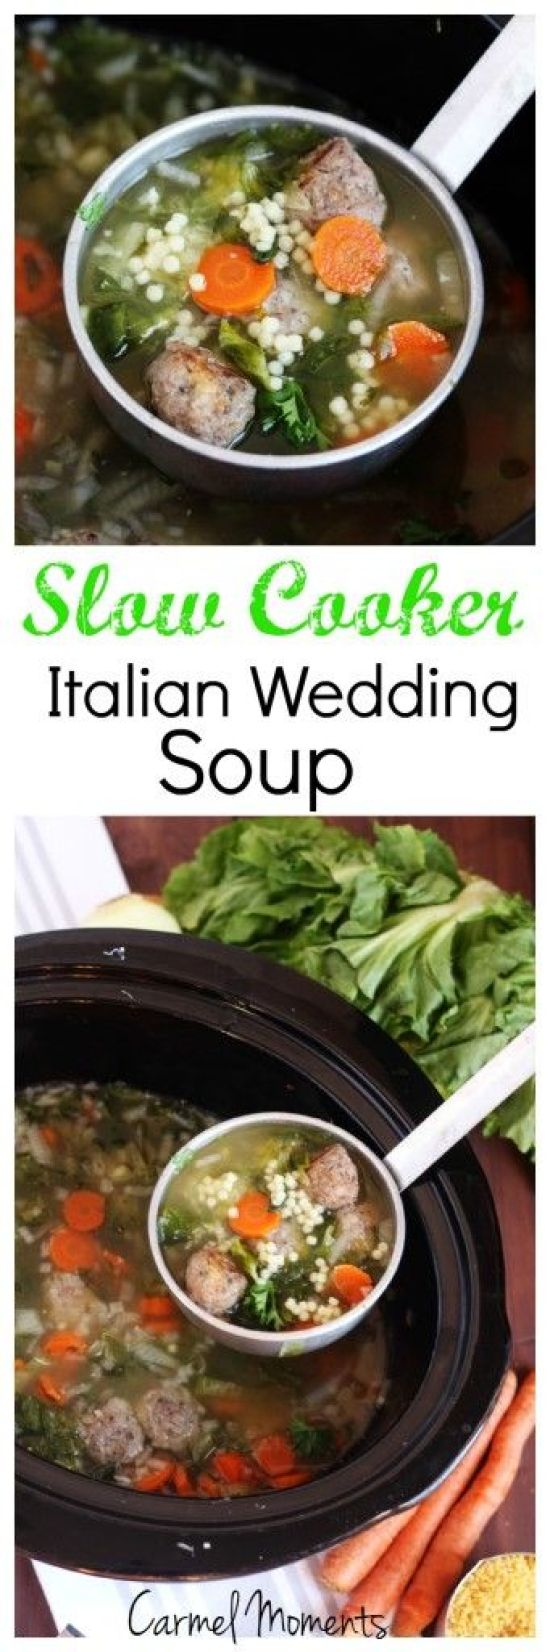 Slow Cooker Italian Wedding Soup Recipe | Gather for Bread